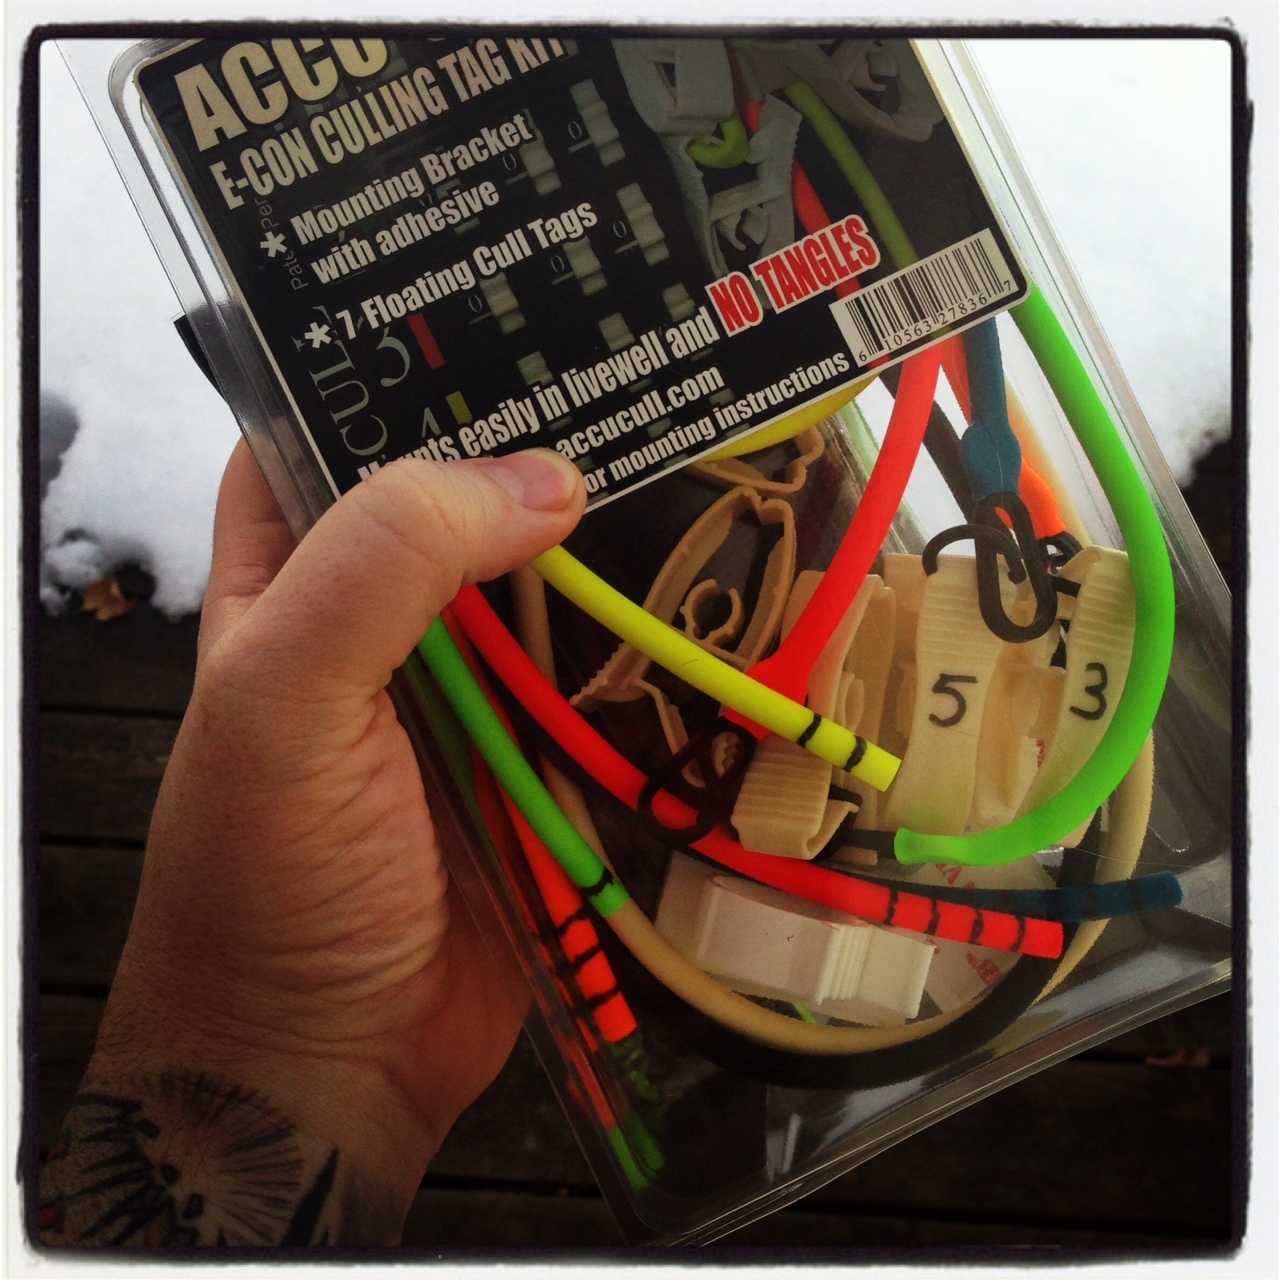 Bass junkies fishing addiction accu cull these aint for Fish culling system